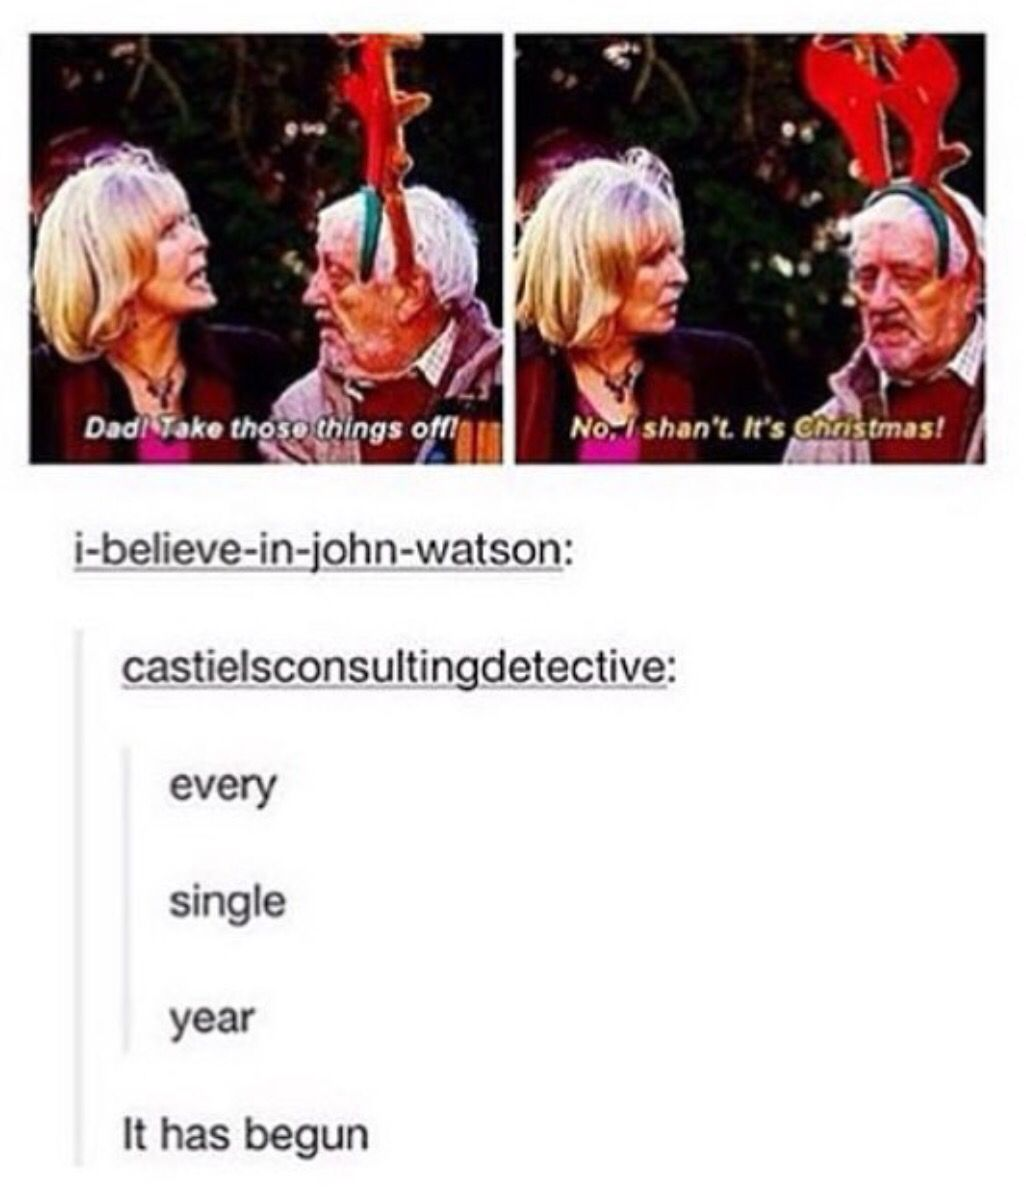 Pin by Charlotte ✌ on Doctor Who | Pinterest